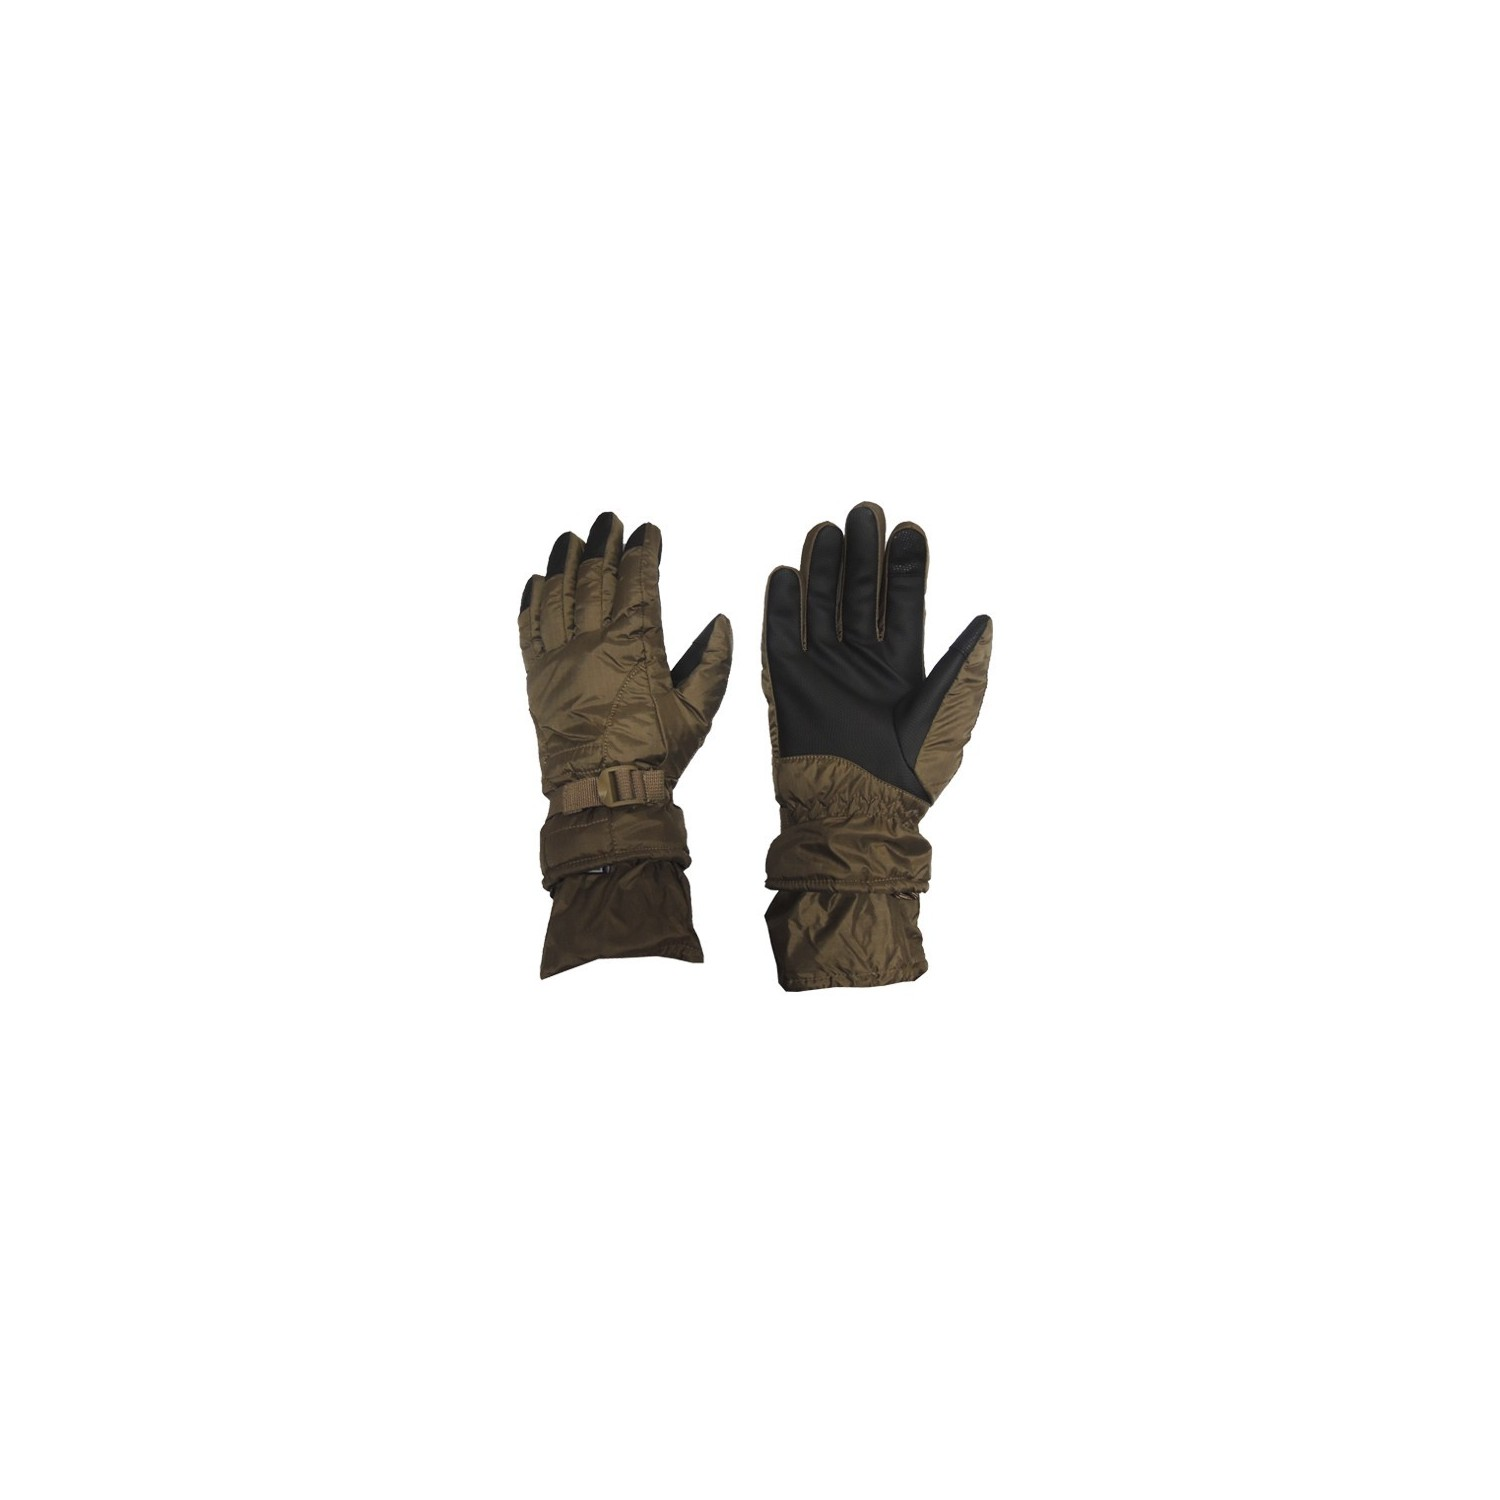 N3B ECW FIELD GLOVE COYOTE